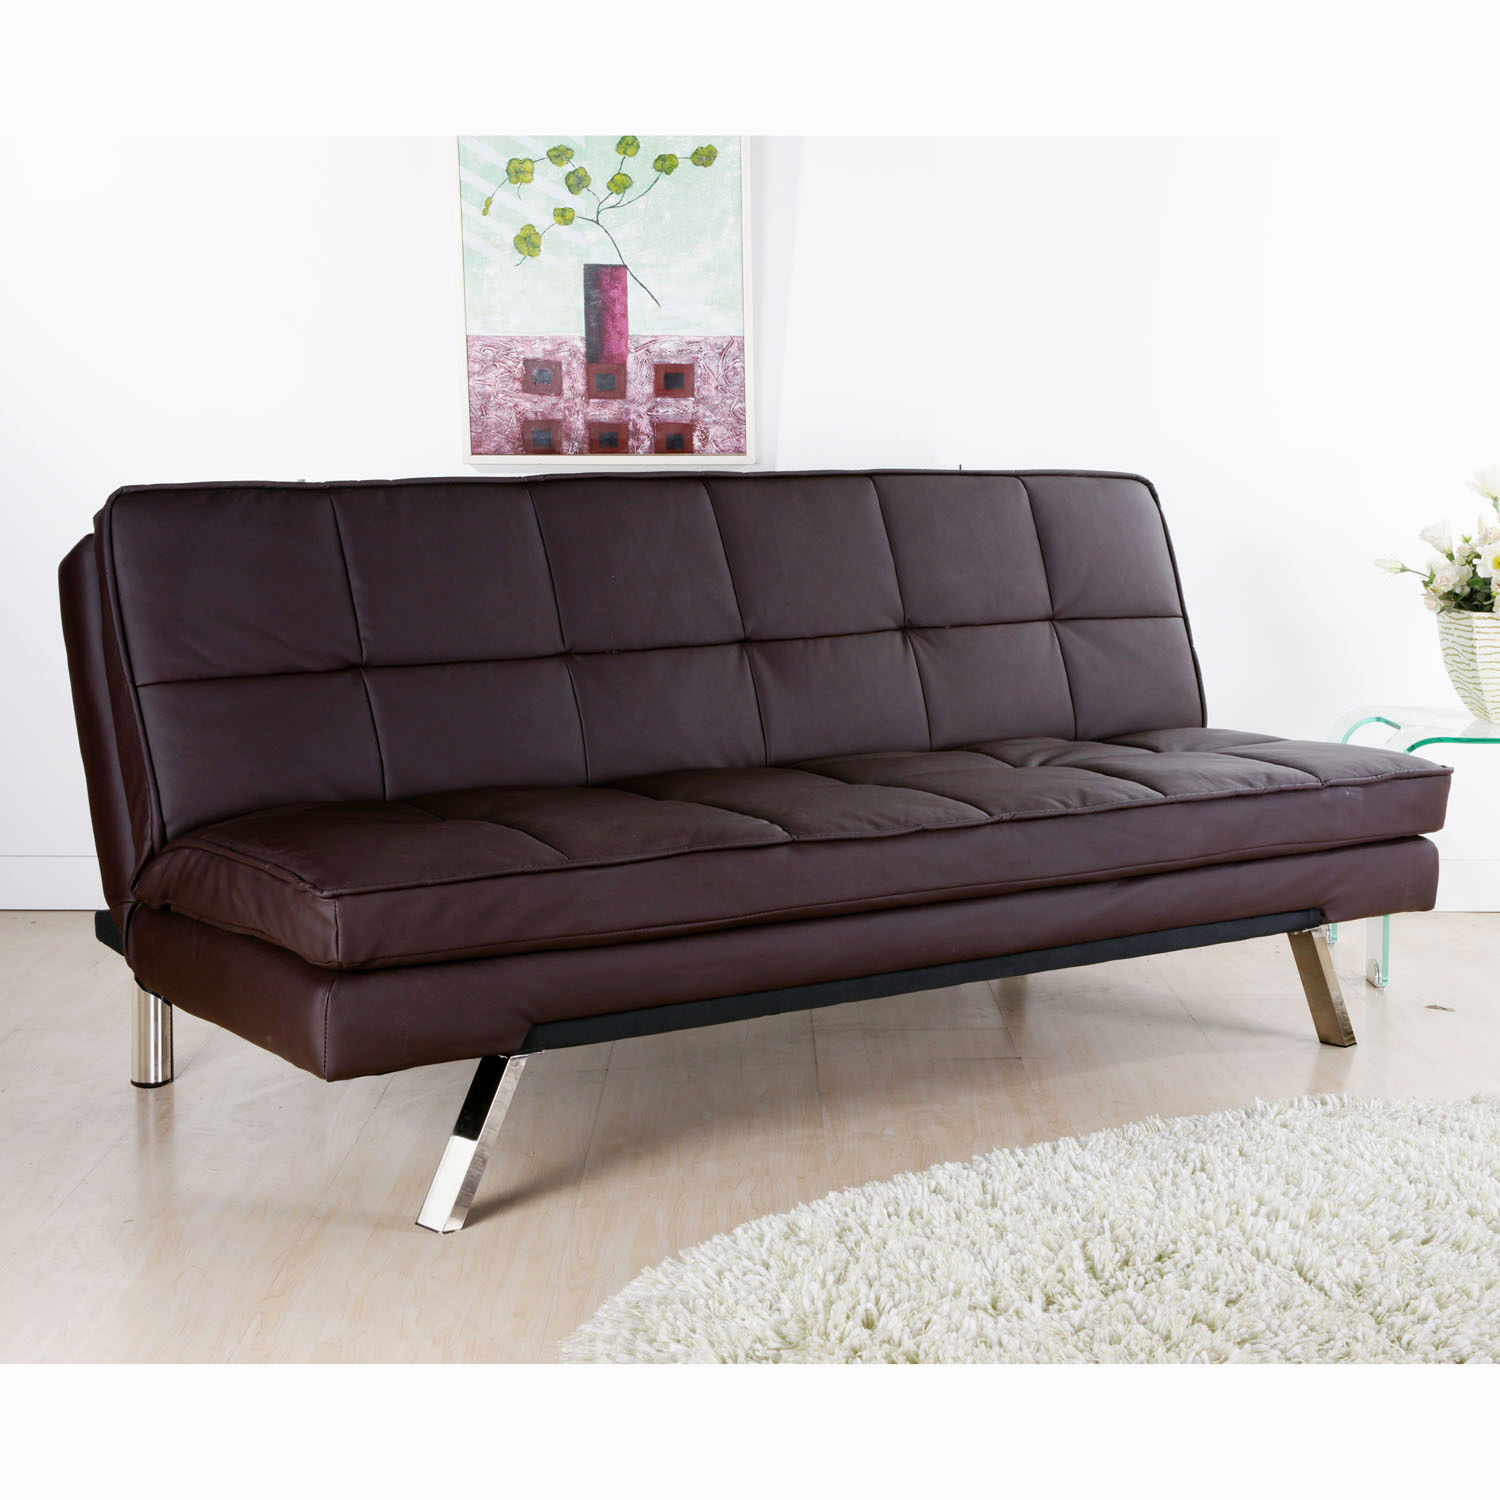 best ashley furniture sofa architecture-Finest ashley Furniture sofa Online